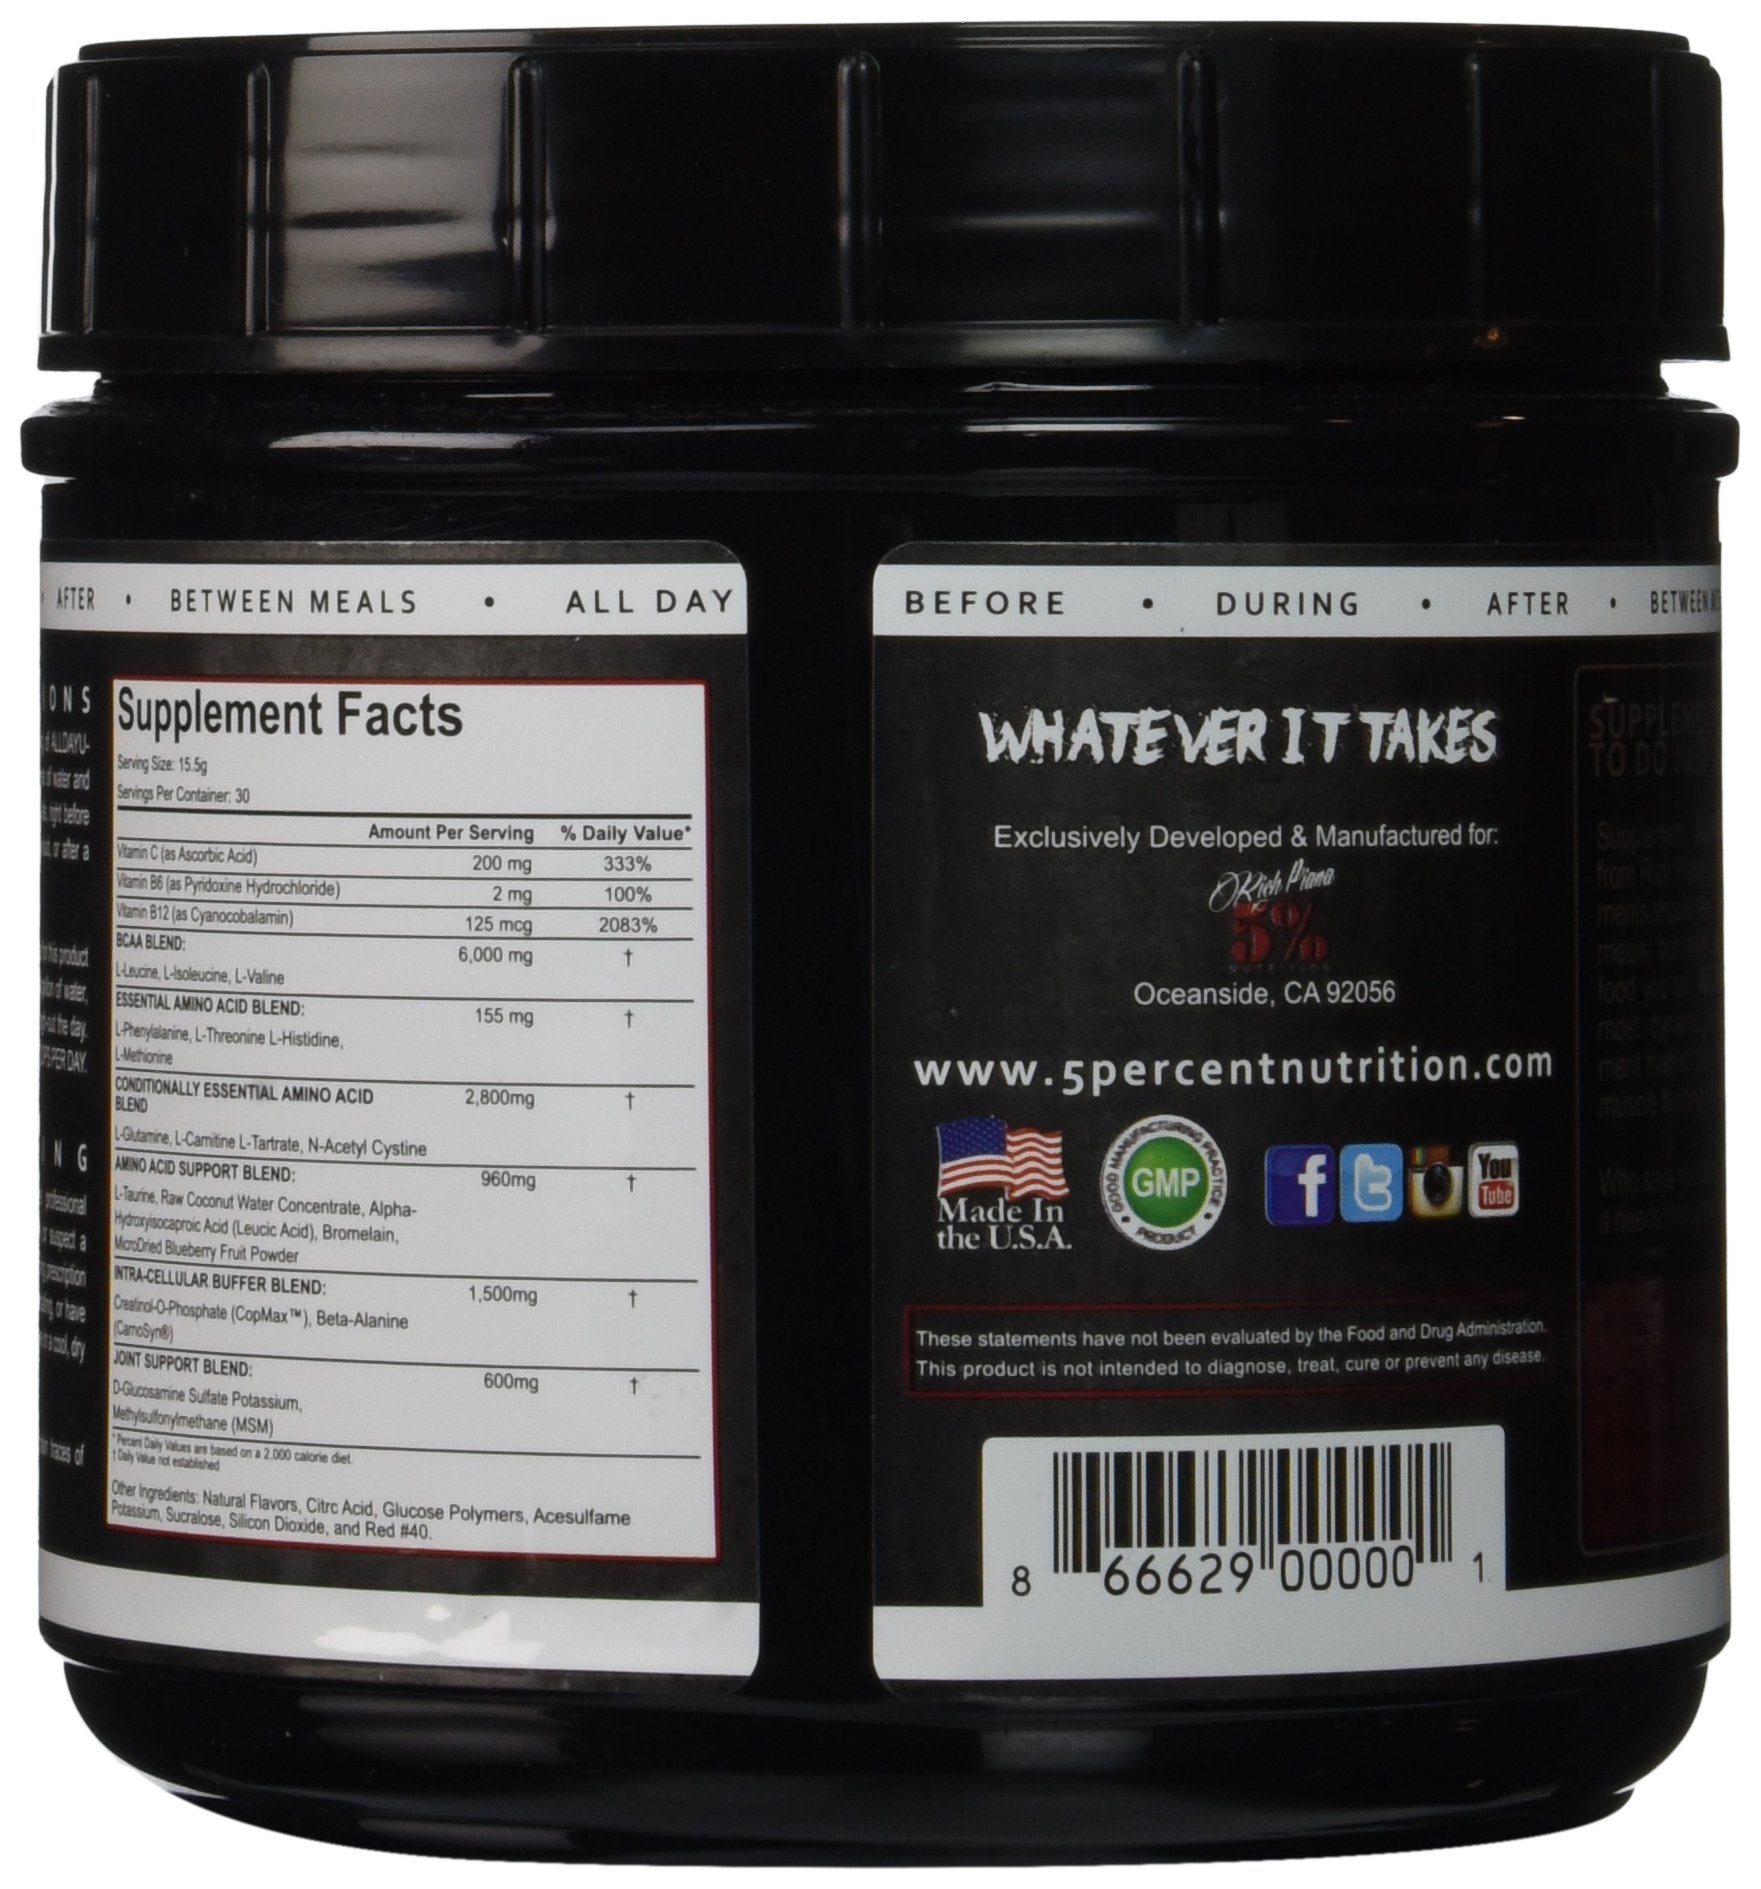 81WaOvfGFgL - 5% Nutrition - Rich Piana All Day You May, Fruit Punch, PER1001/462/101